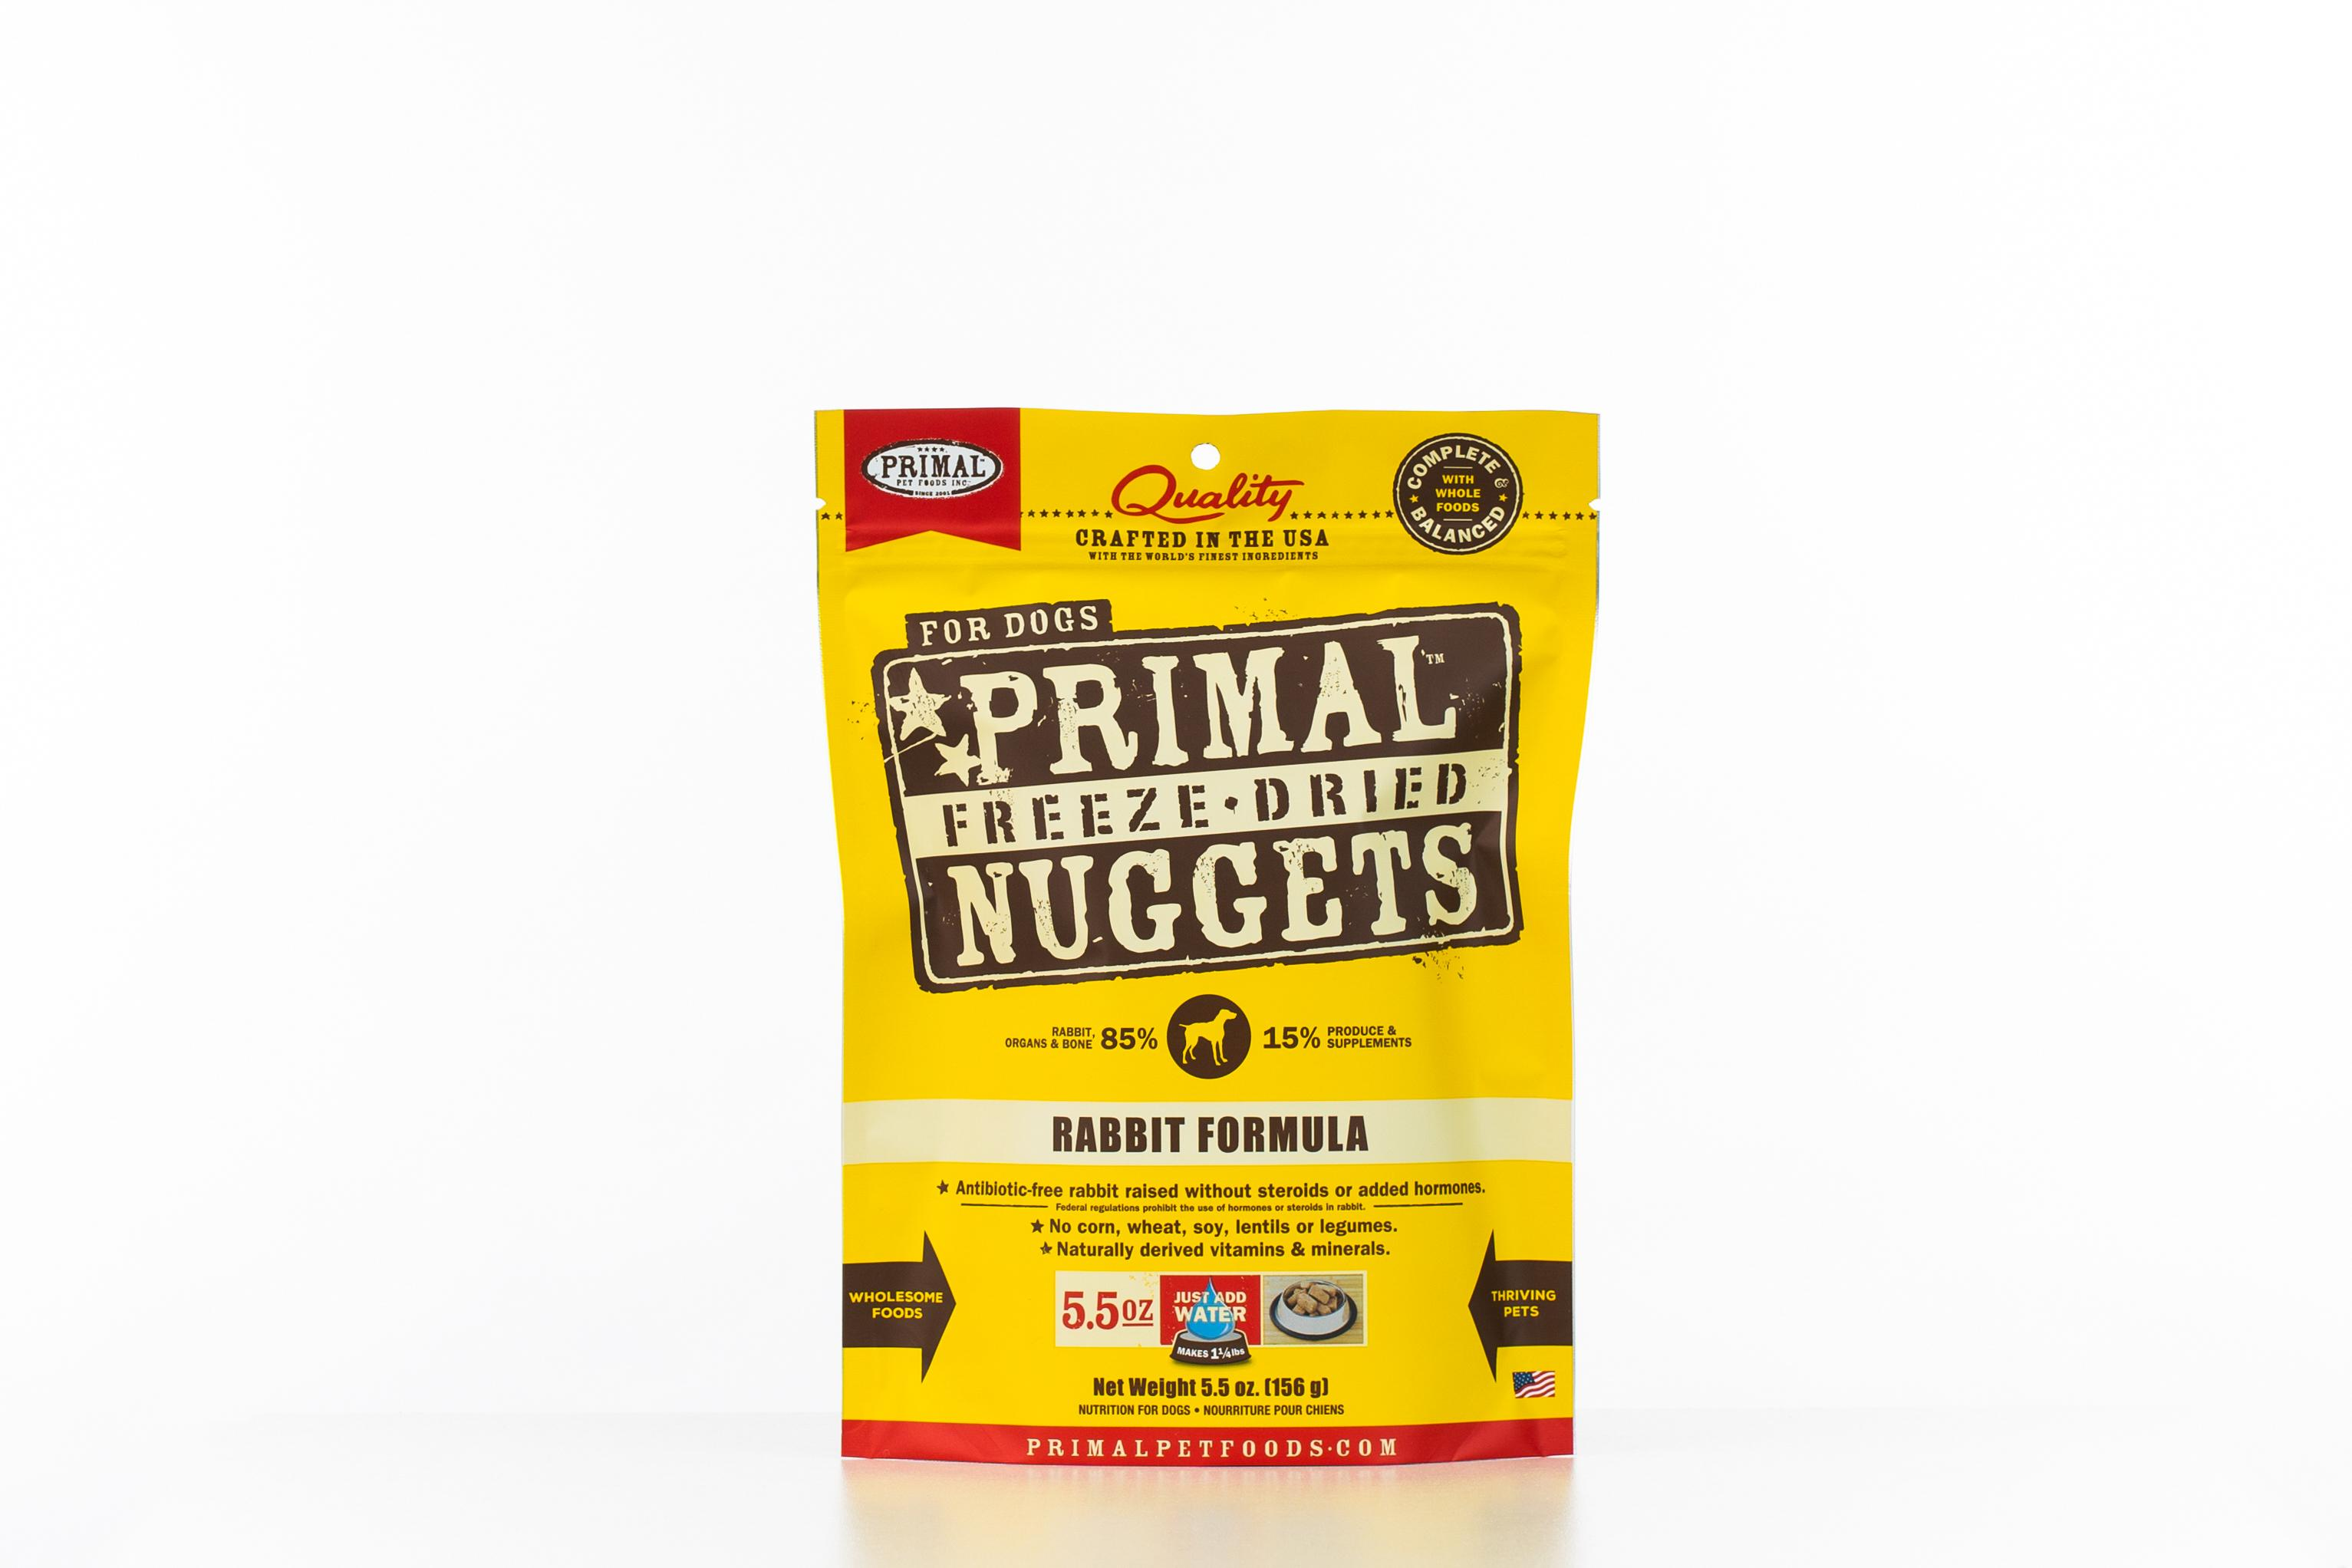 Primal Raw Freeze-Dried Nuggets Rabbit Formula Dog Food Image